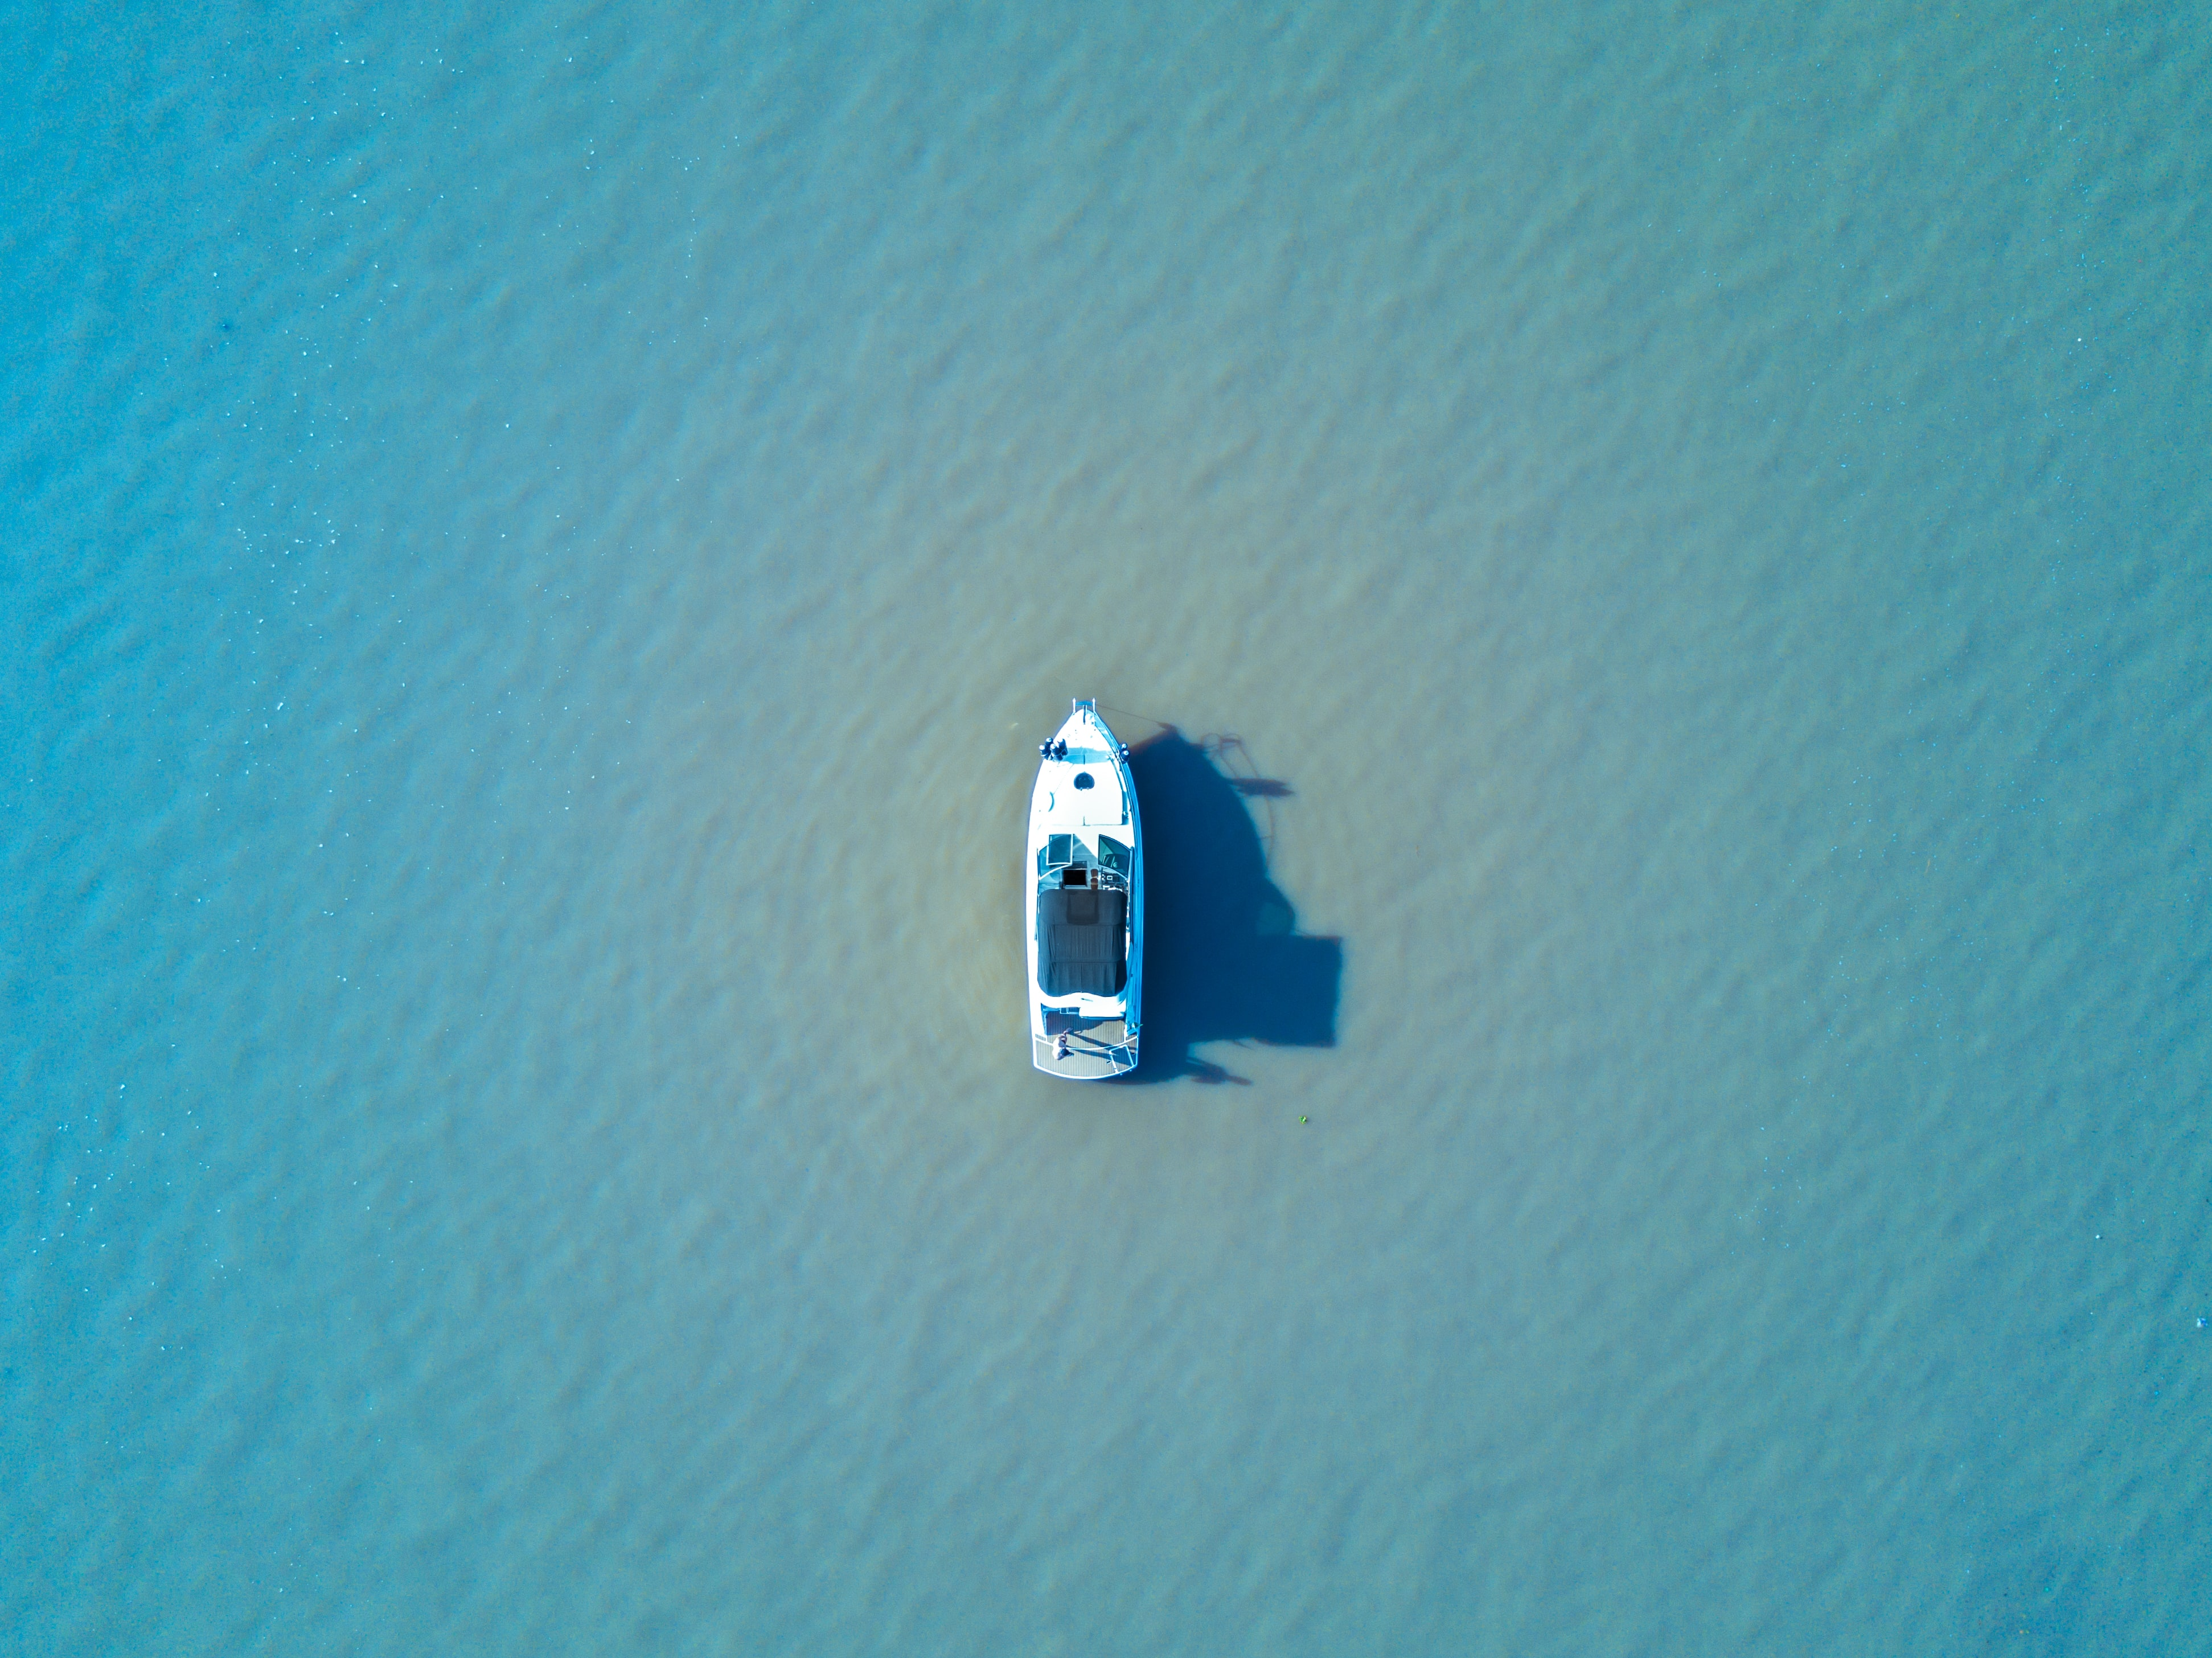 white boat in the middle of the sea during daytime